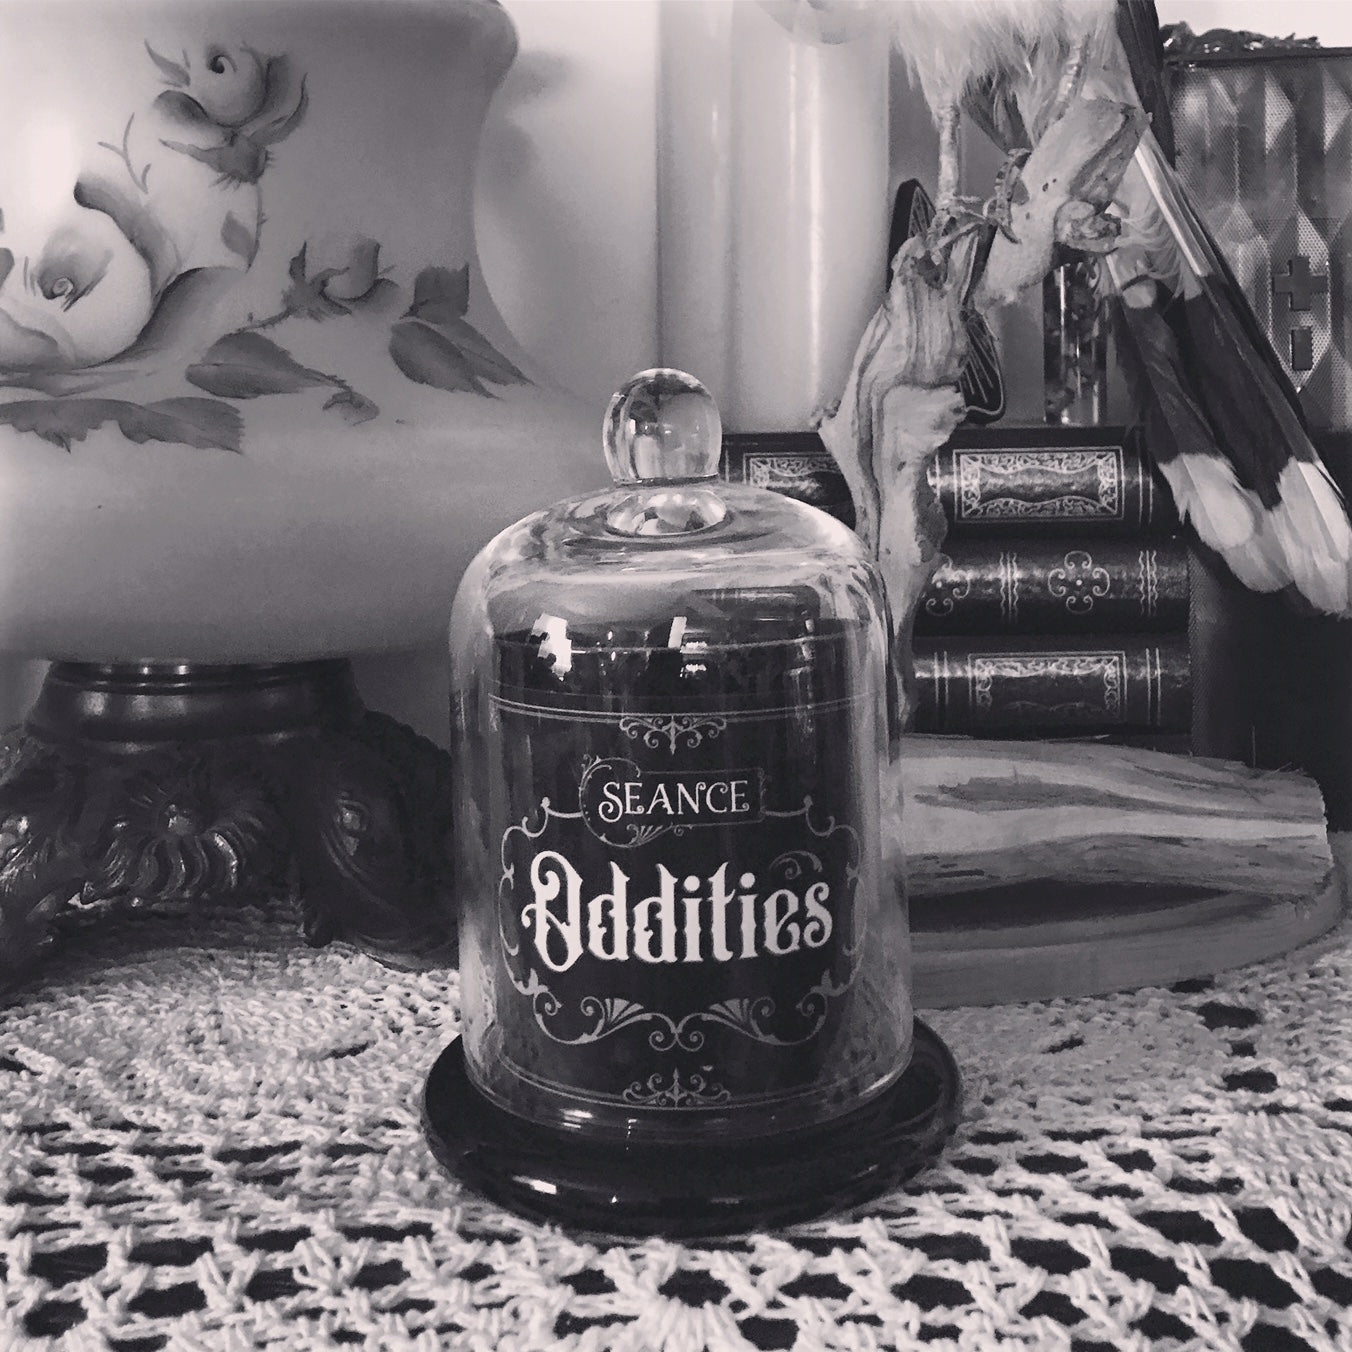 Oddities Cloche Candle (Musk and Jasmine)